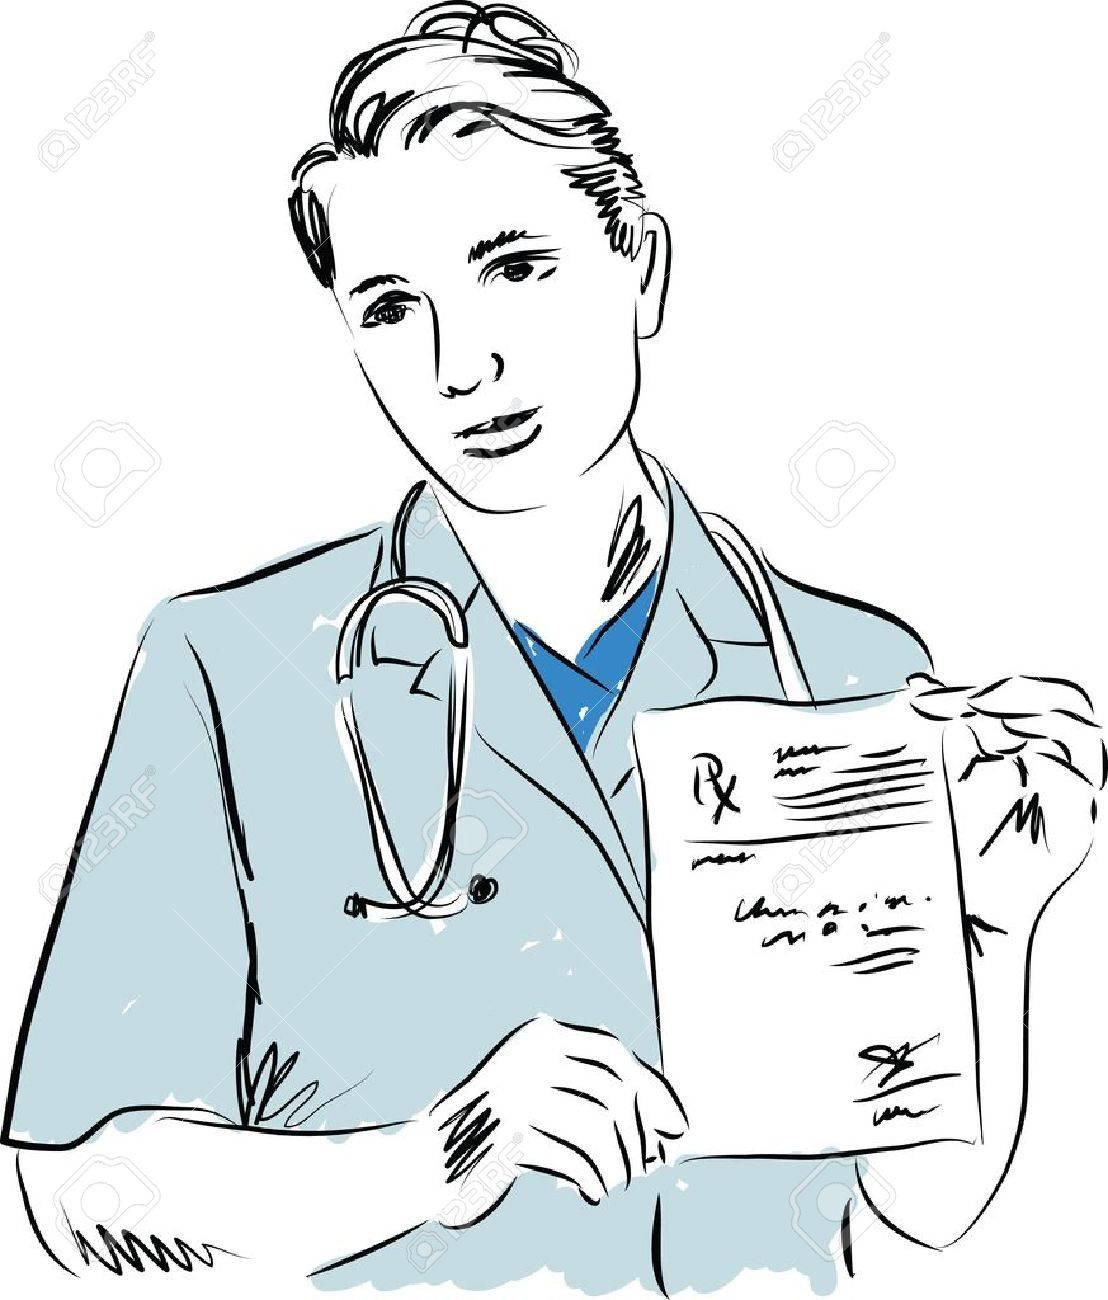 doctor medical illustration 1 Stock Vector - 20270005